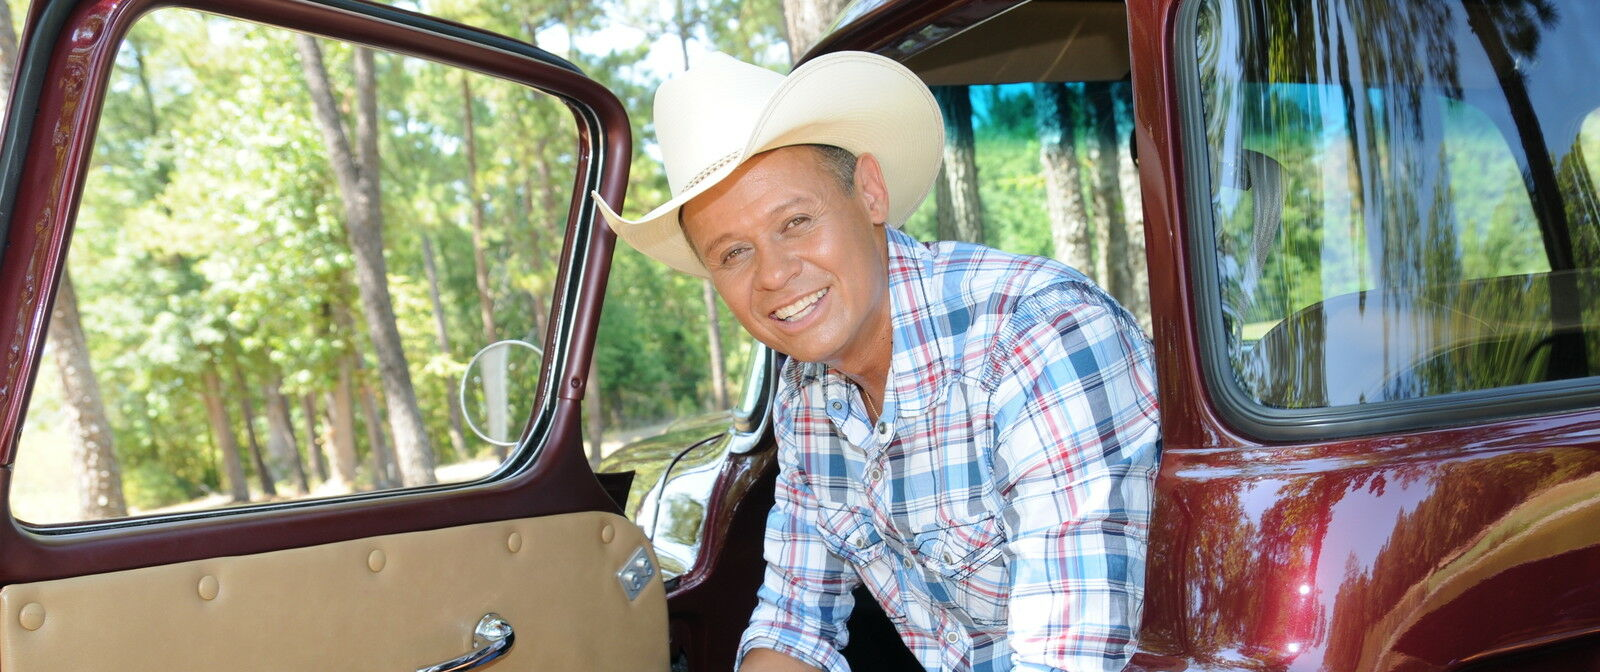 Neal McCoy with Pat Green and Diamond Rio Tickets (21+ Event)